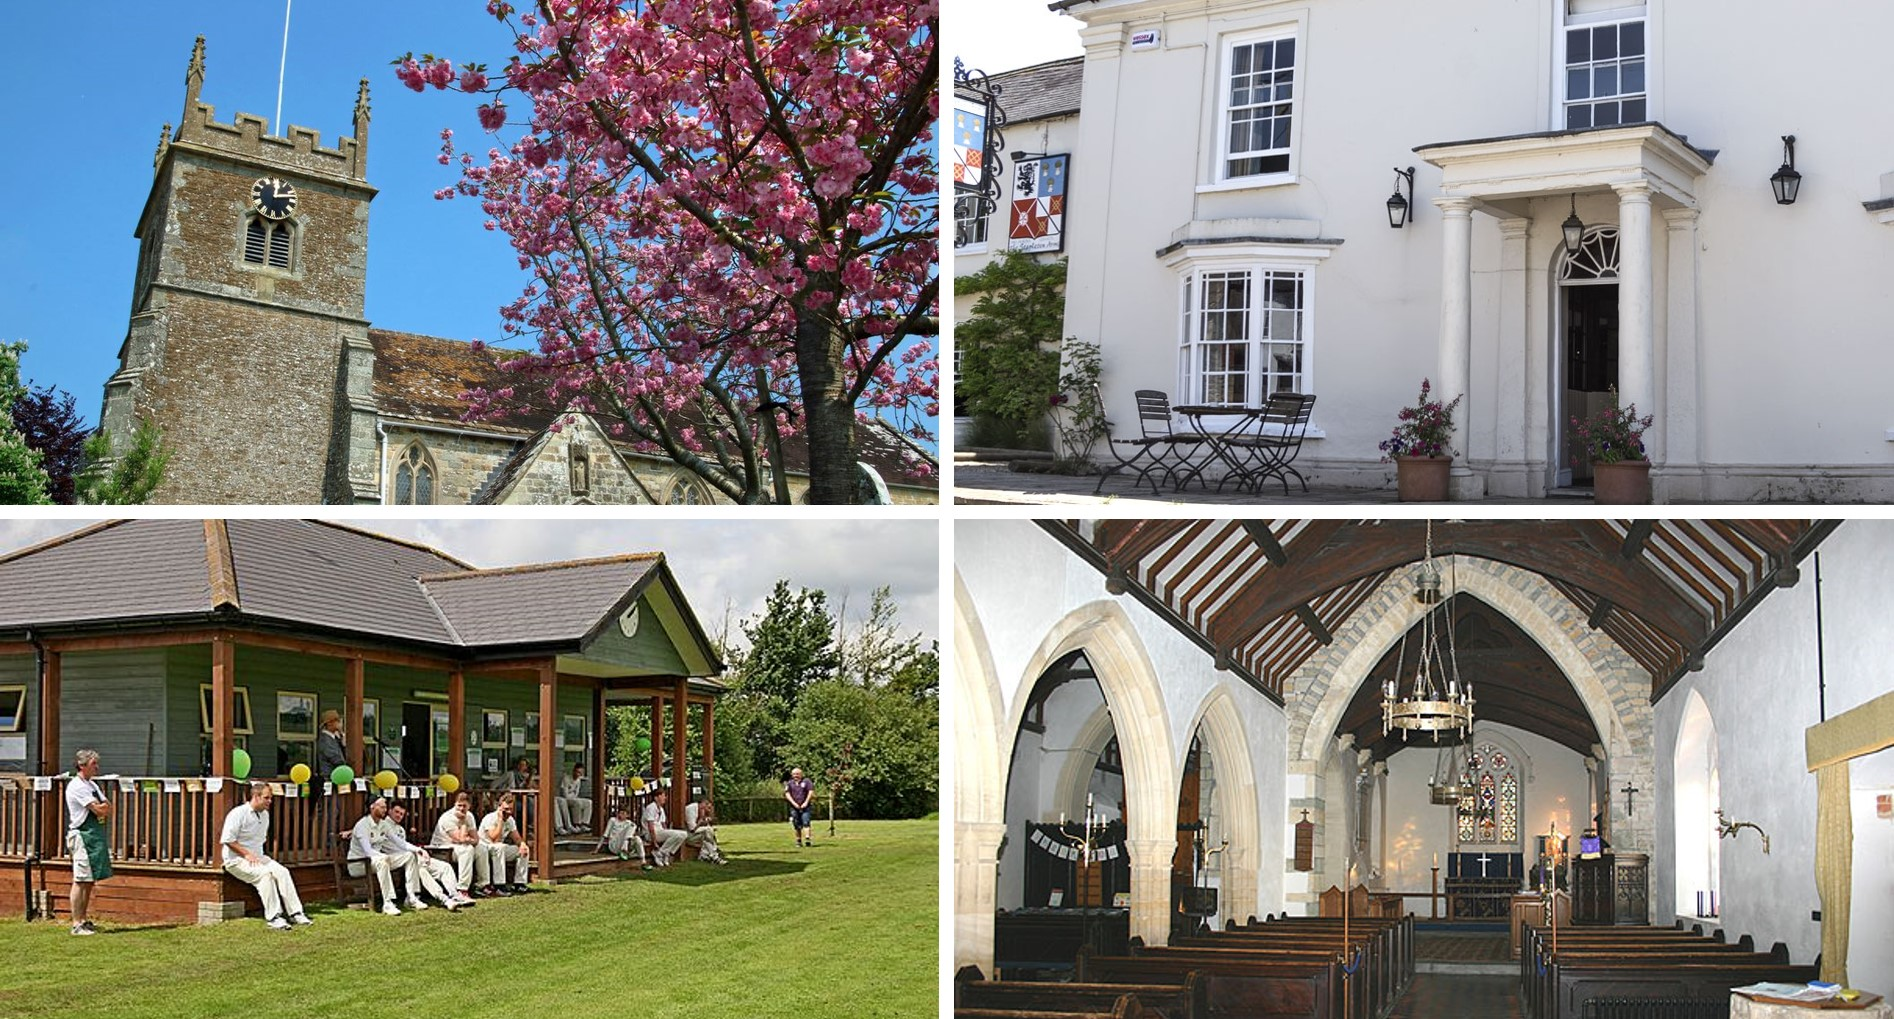 Four images of Buckhorn Weston. Top left is a view of St John's church with the cherry tree in full bloom. Top right shows a view of the Stapleton Arms pub. Bottom left shows the cricket pavilion. Bottom right shows the congregation and alter of St John's church.